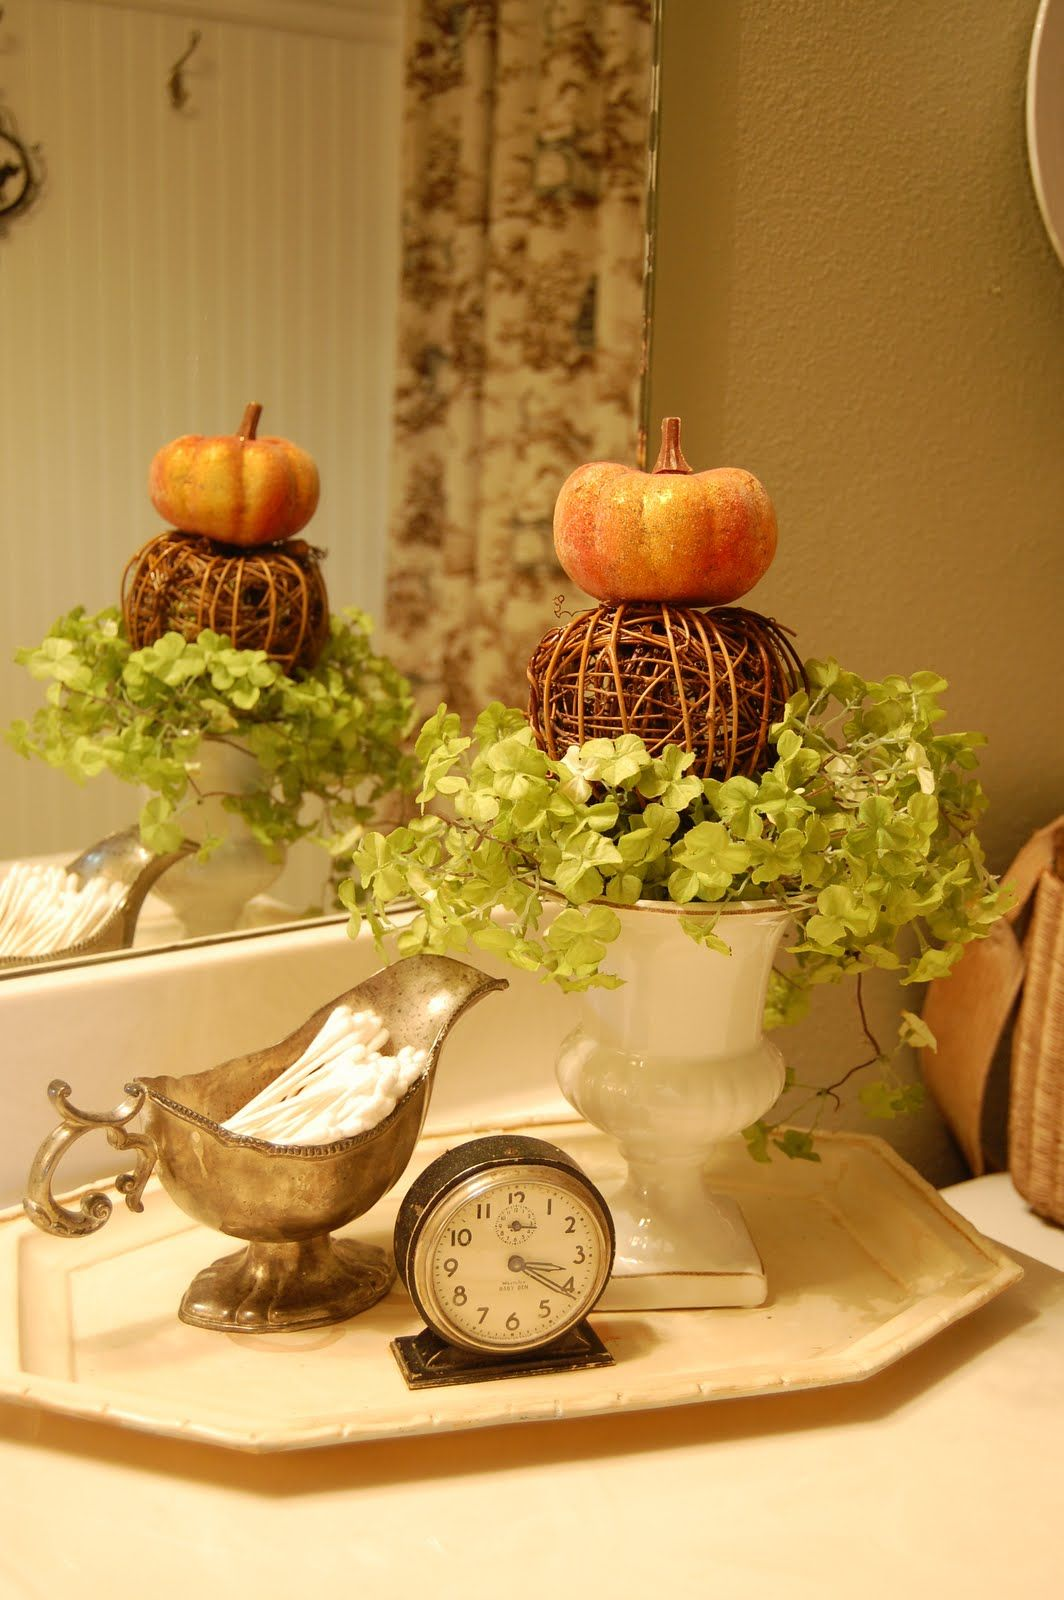 Decorating Your Bathroom For Fall : Cute fall decor for the bathroom happy yall